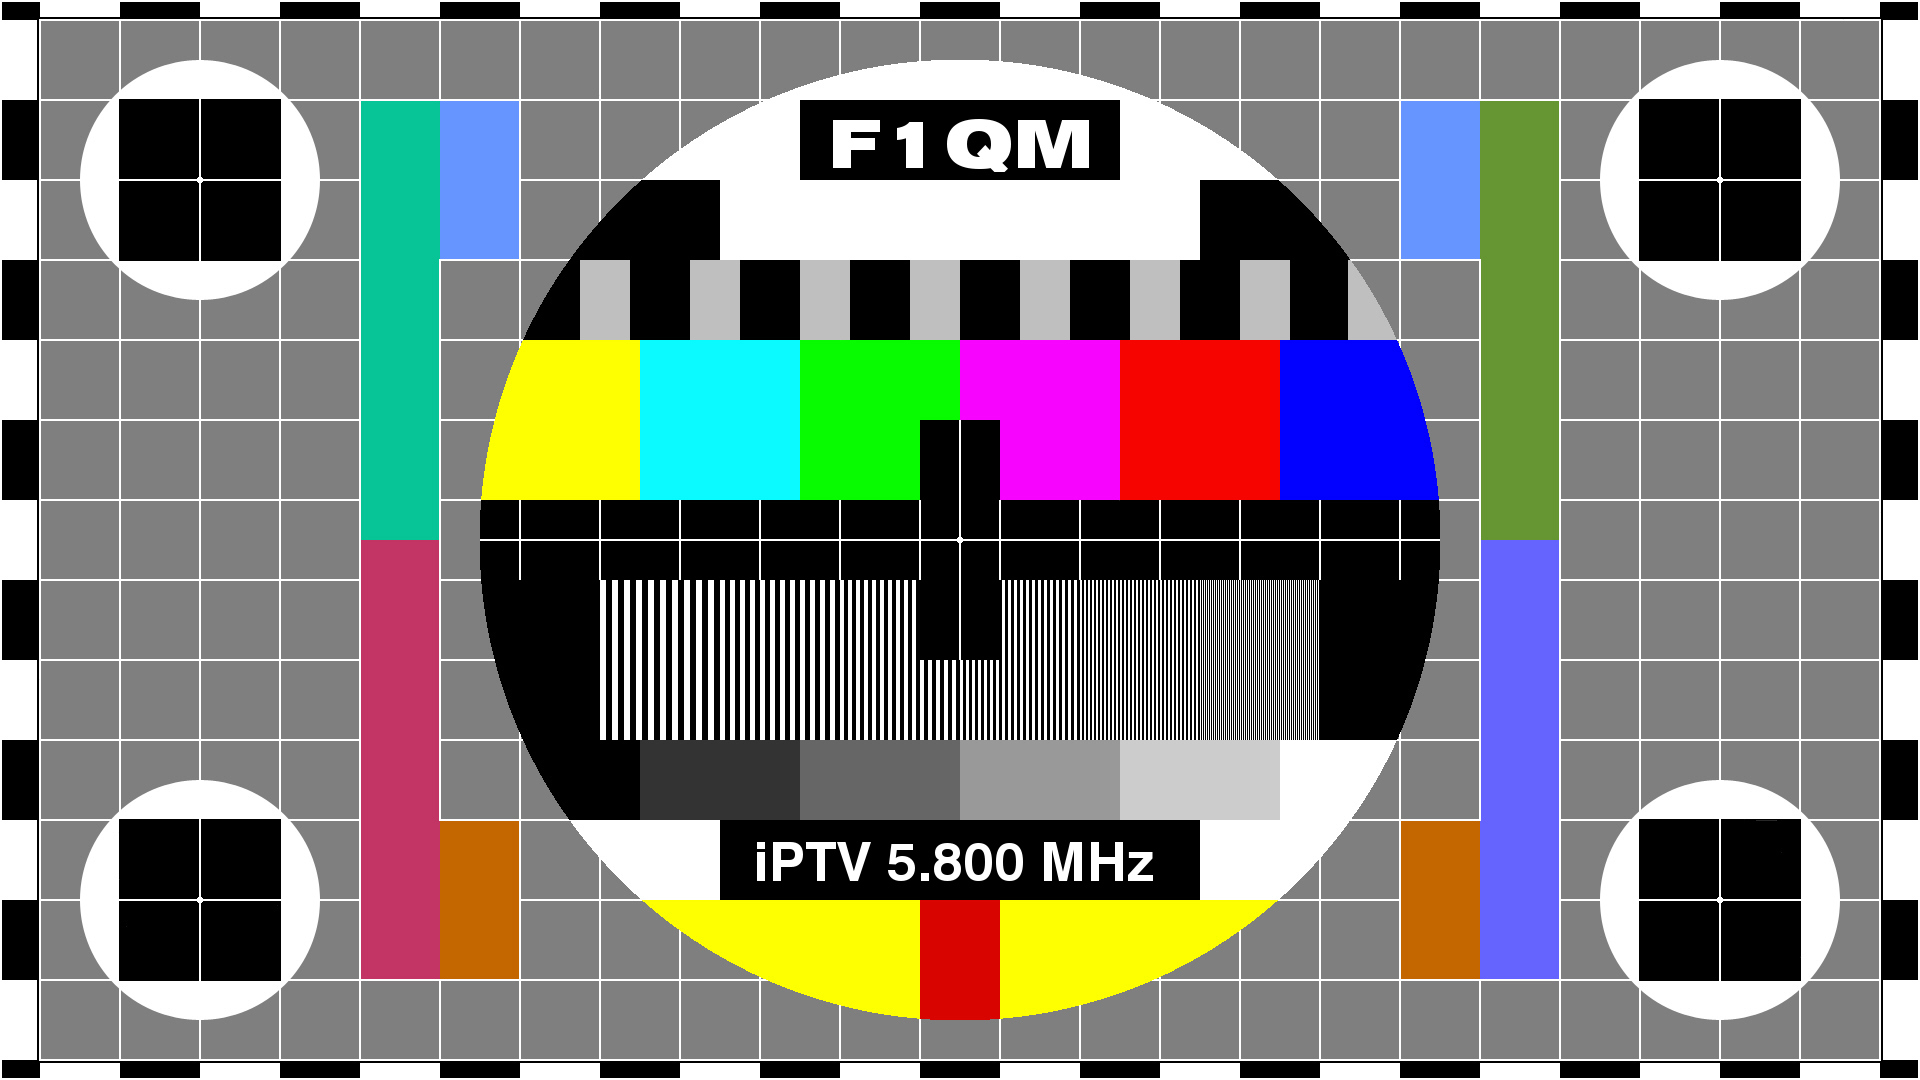 Mire_TV_color_patern_F1QM_Mire_Couleur_16-9